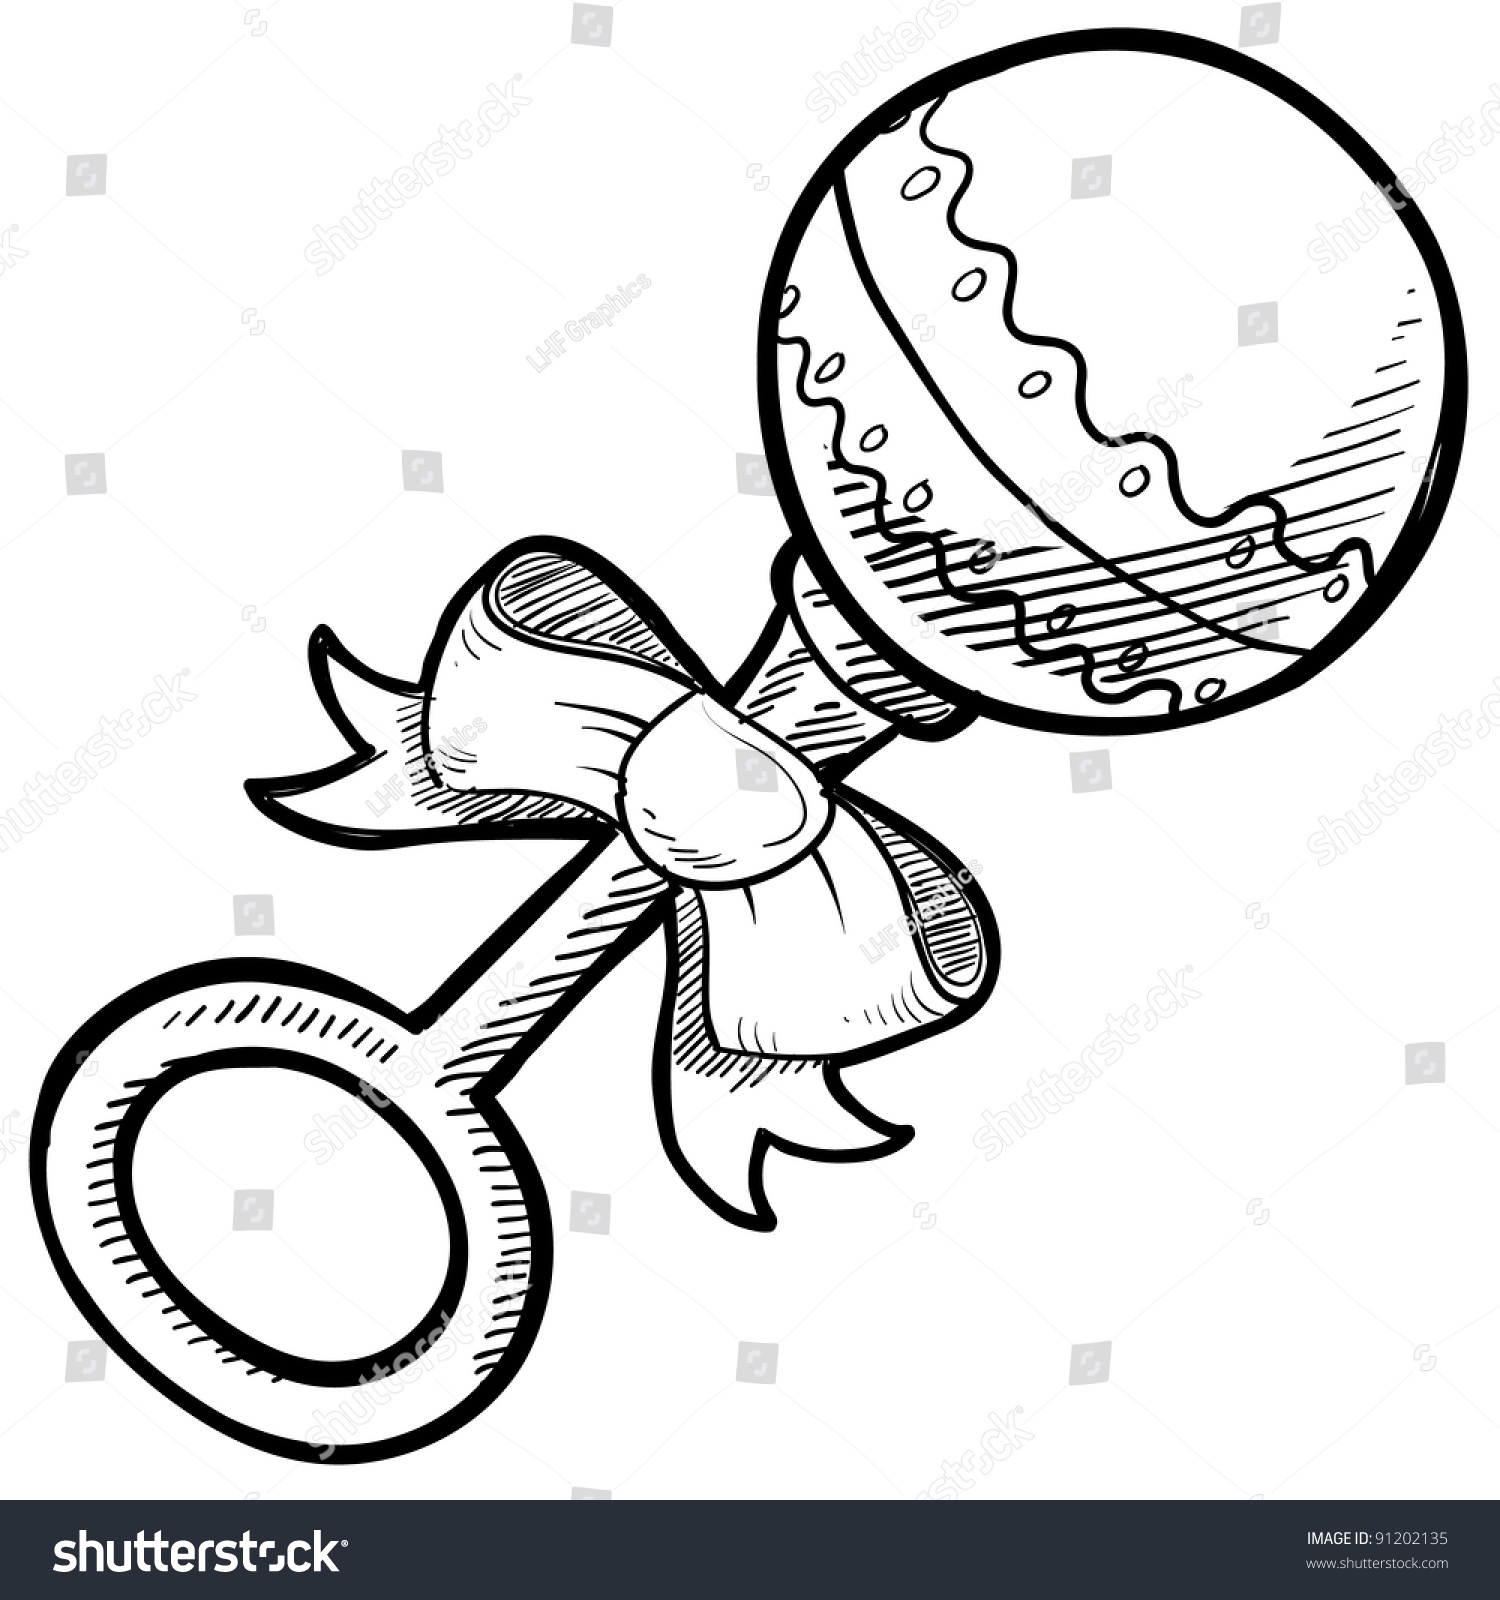 doodle style baby rattle illustration in vector format suitable for web print or advertising